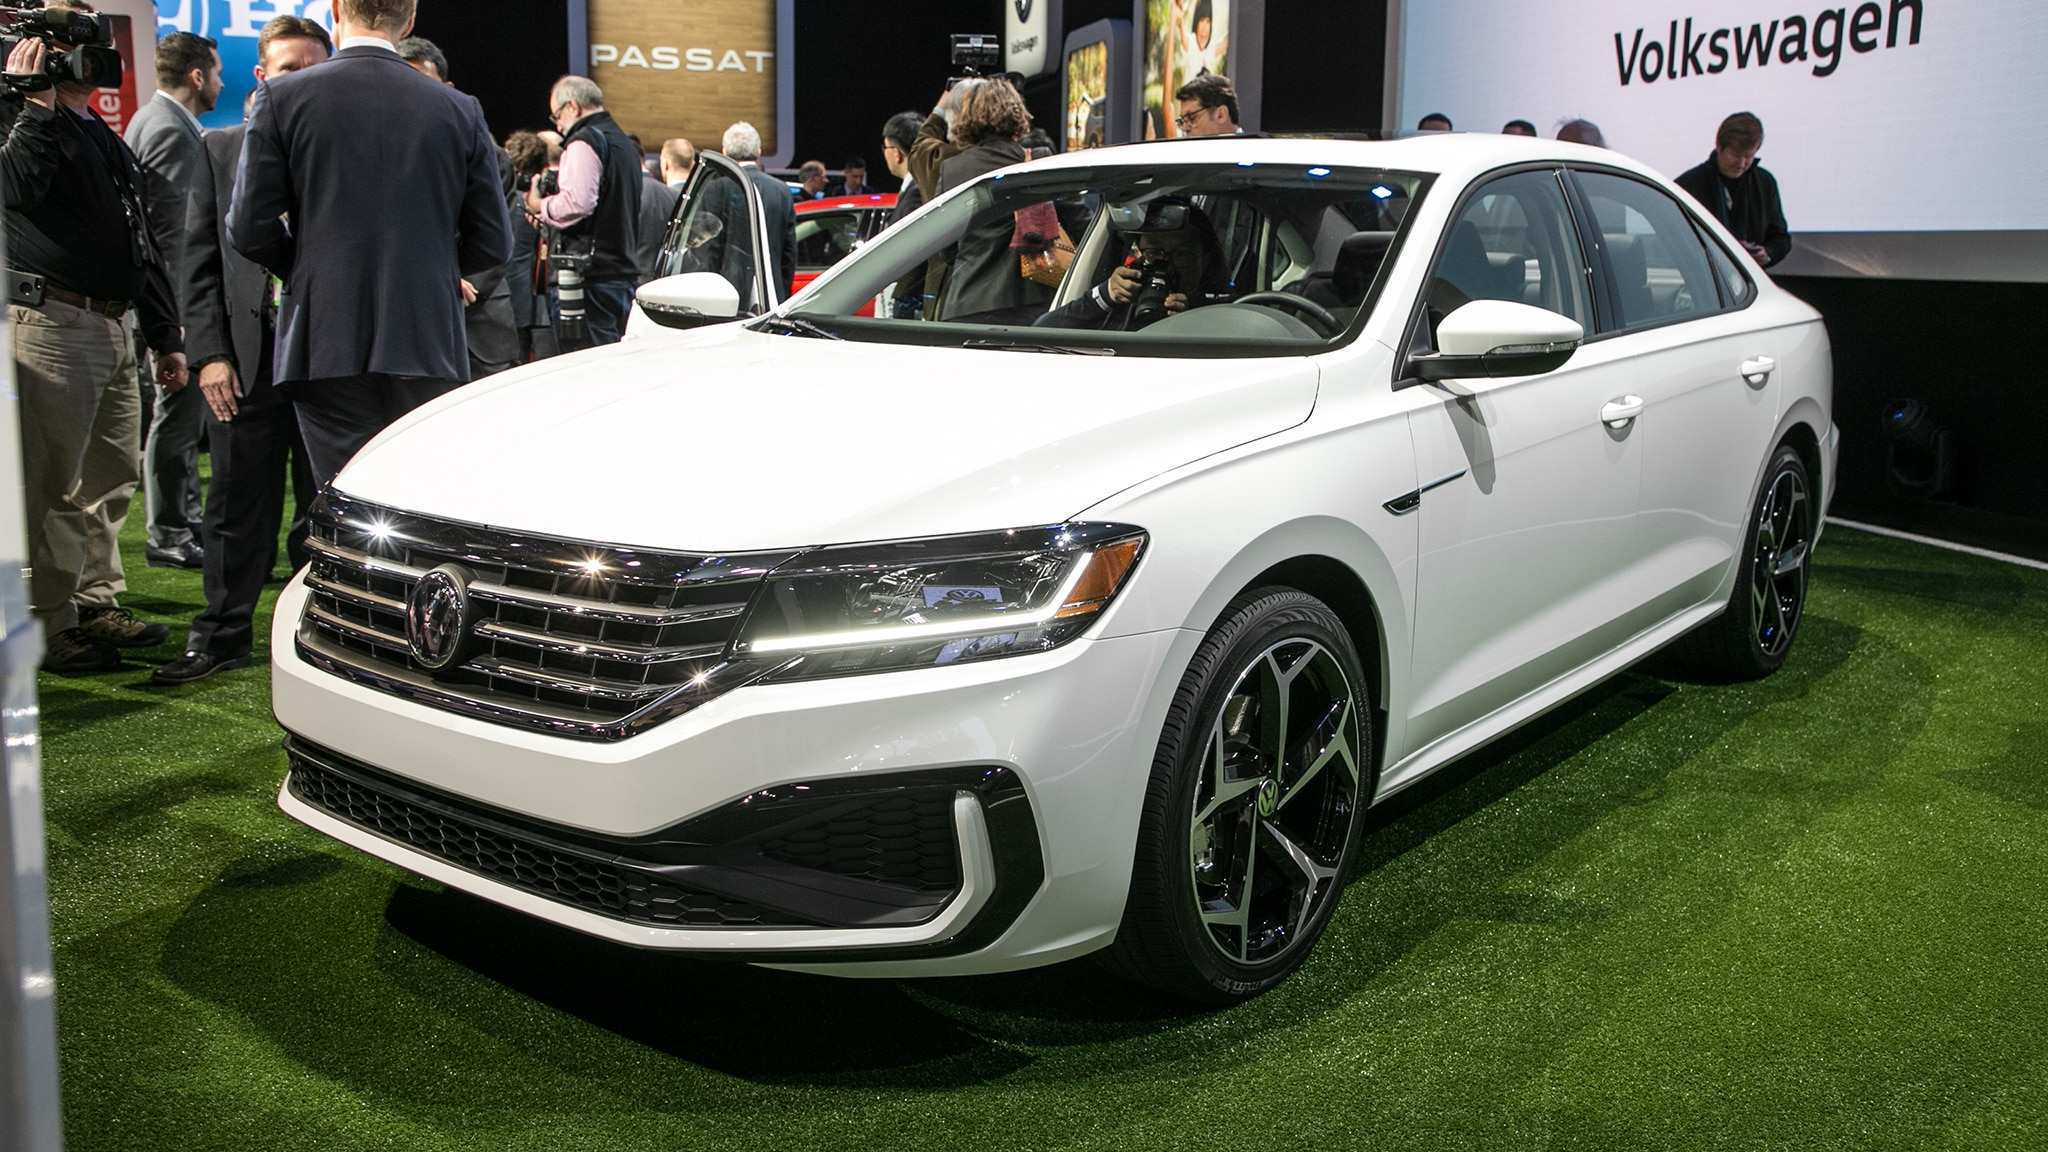 60 All New 2020 VW Passat Gt Redesign and Concept by 2020 VW Passat Gt